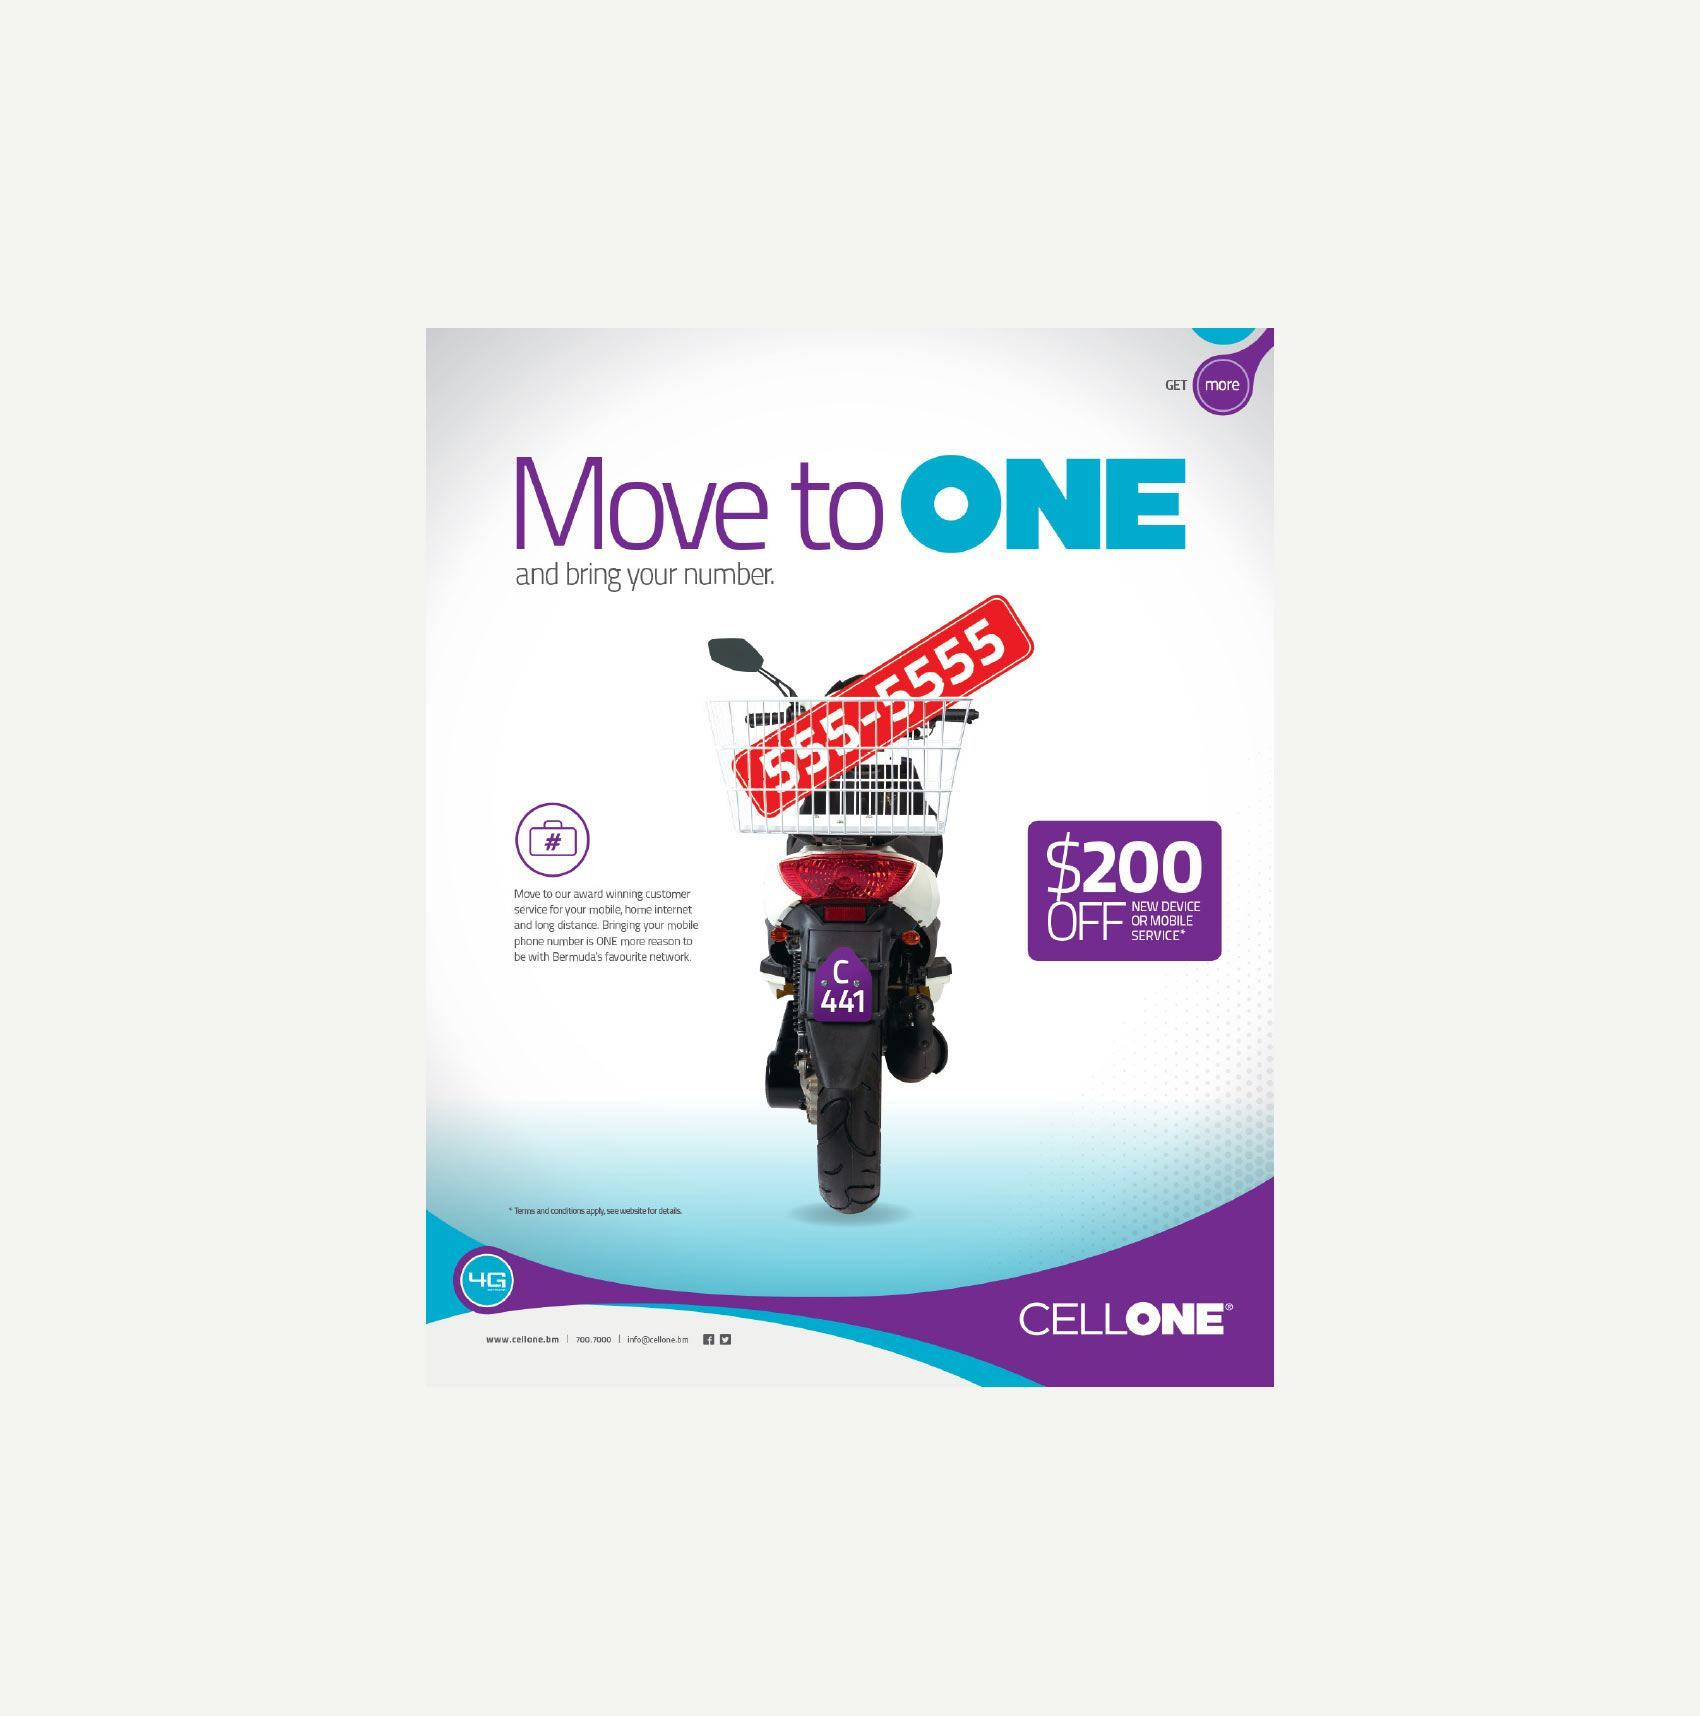 CELLONE - Number Portability Ad Campaign